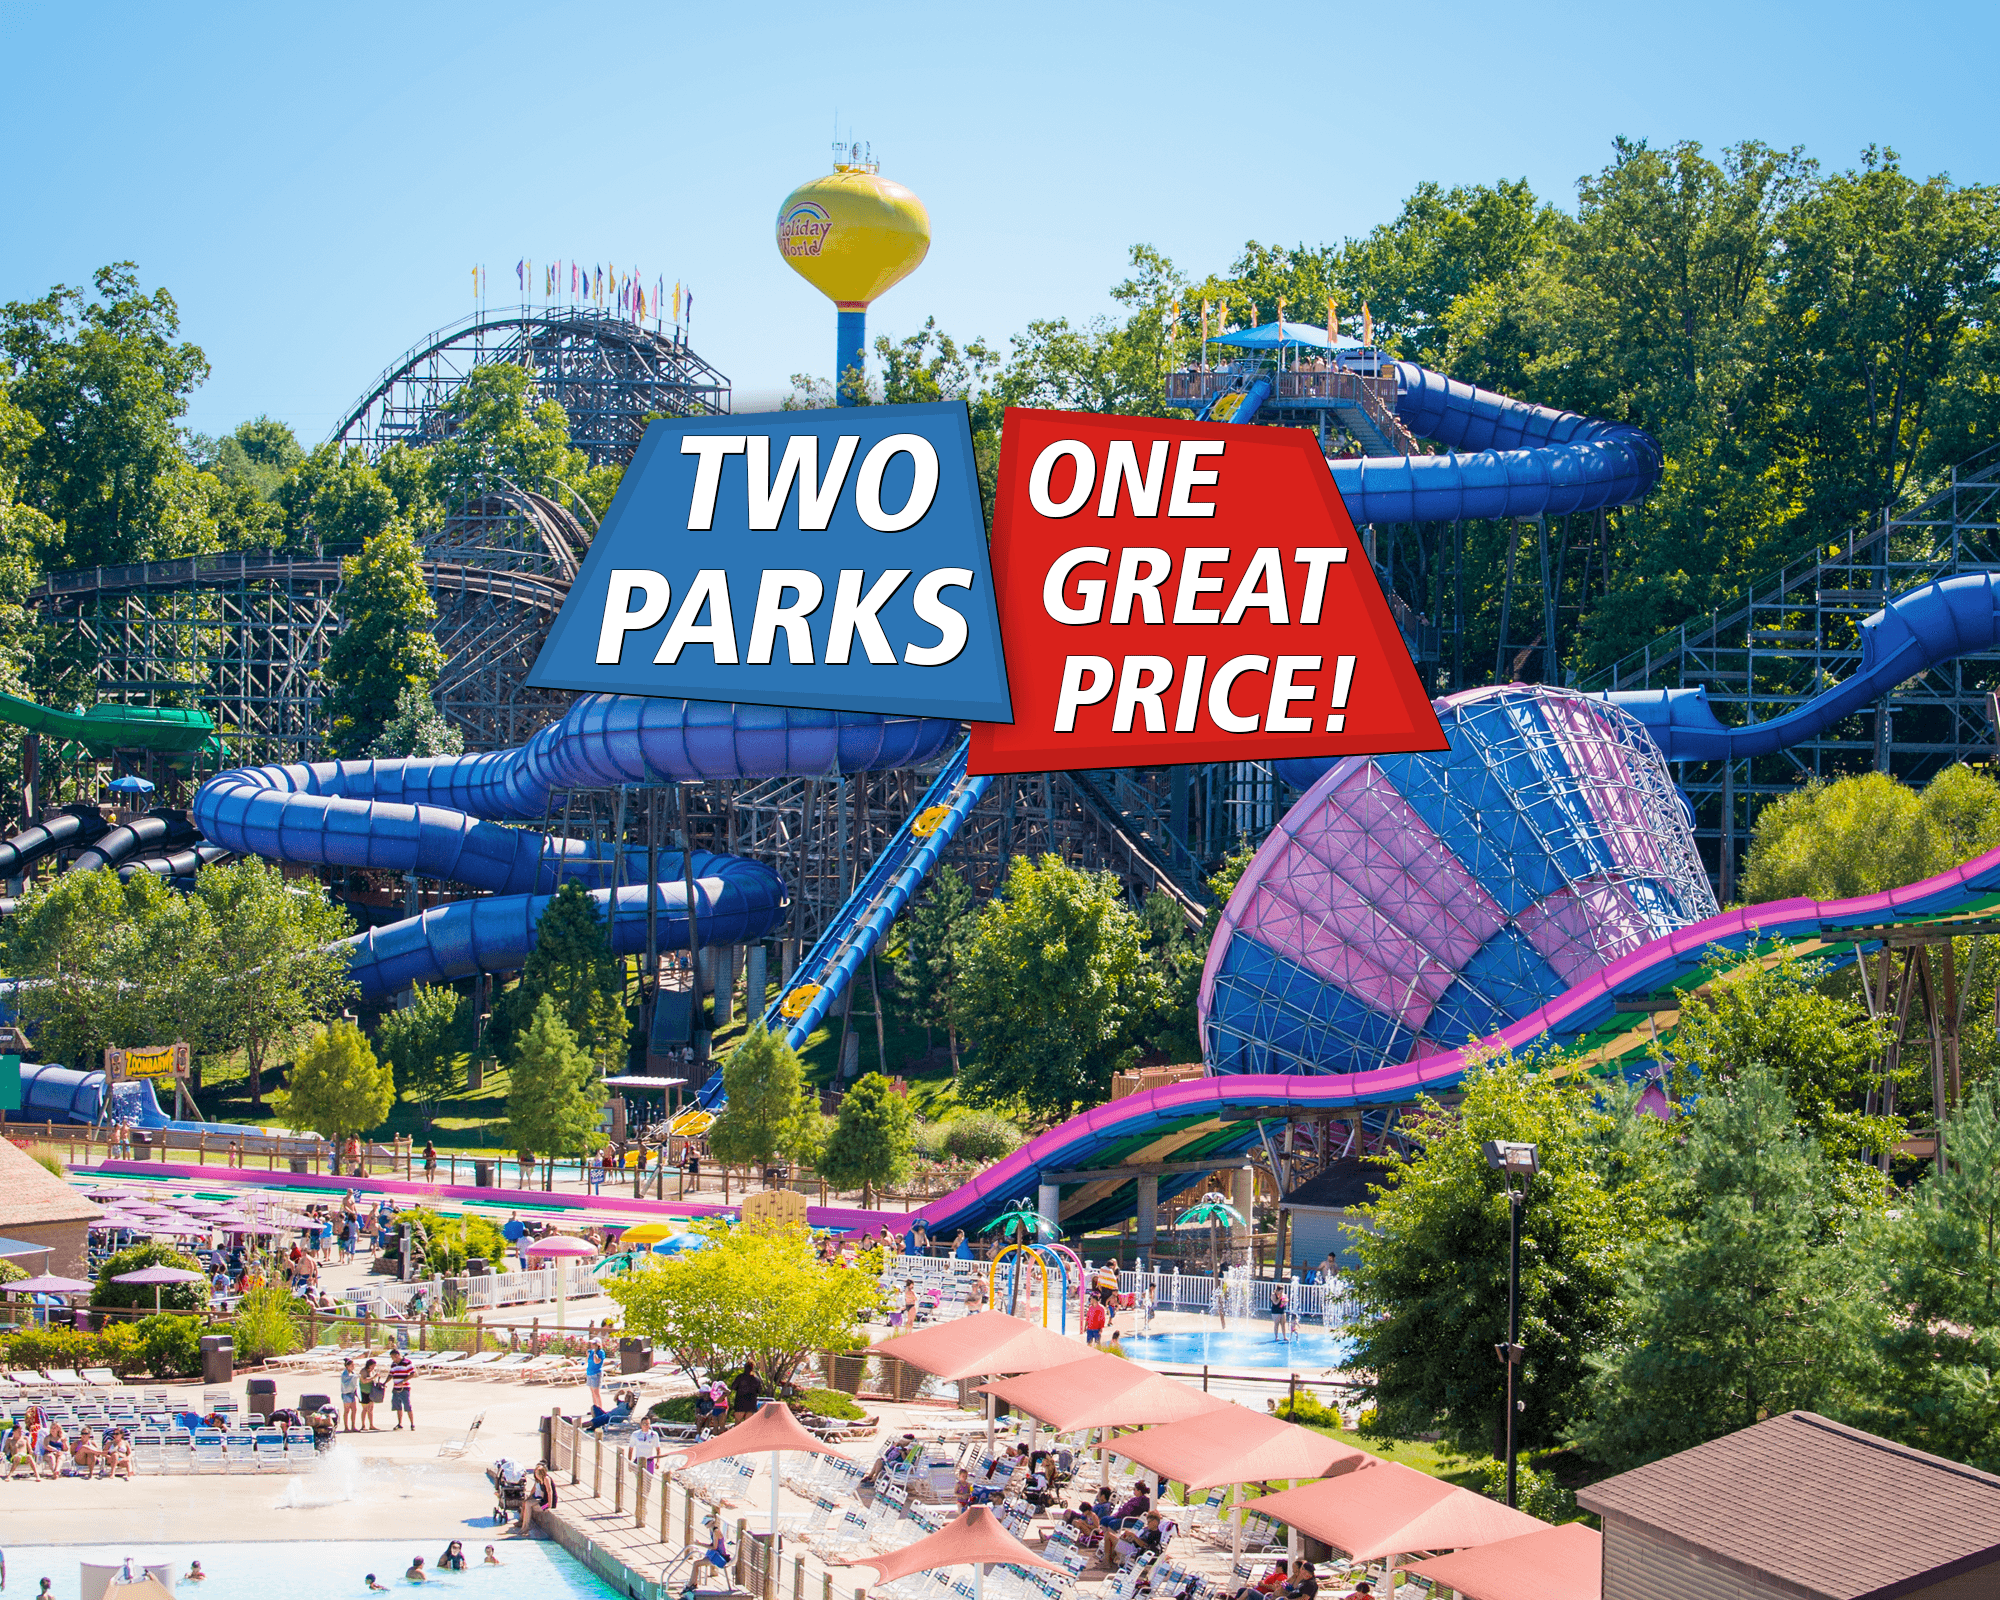 Two Parks, One Price! Holiday World & Splashin' Safari